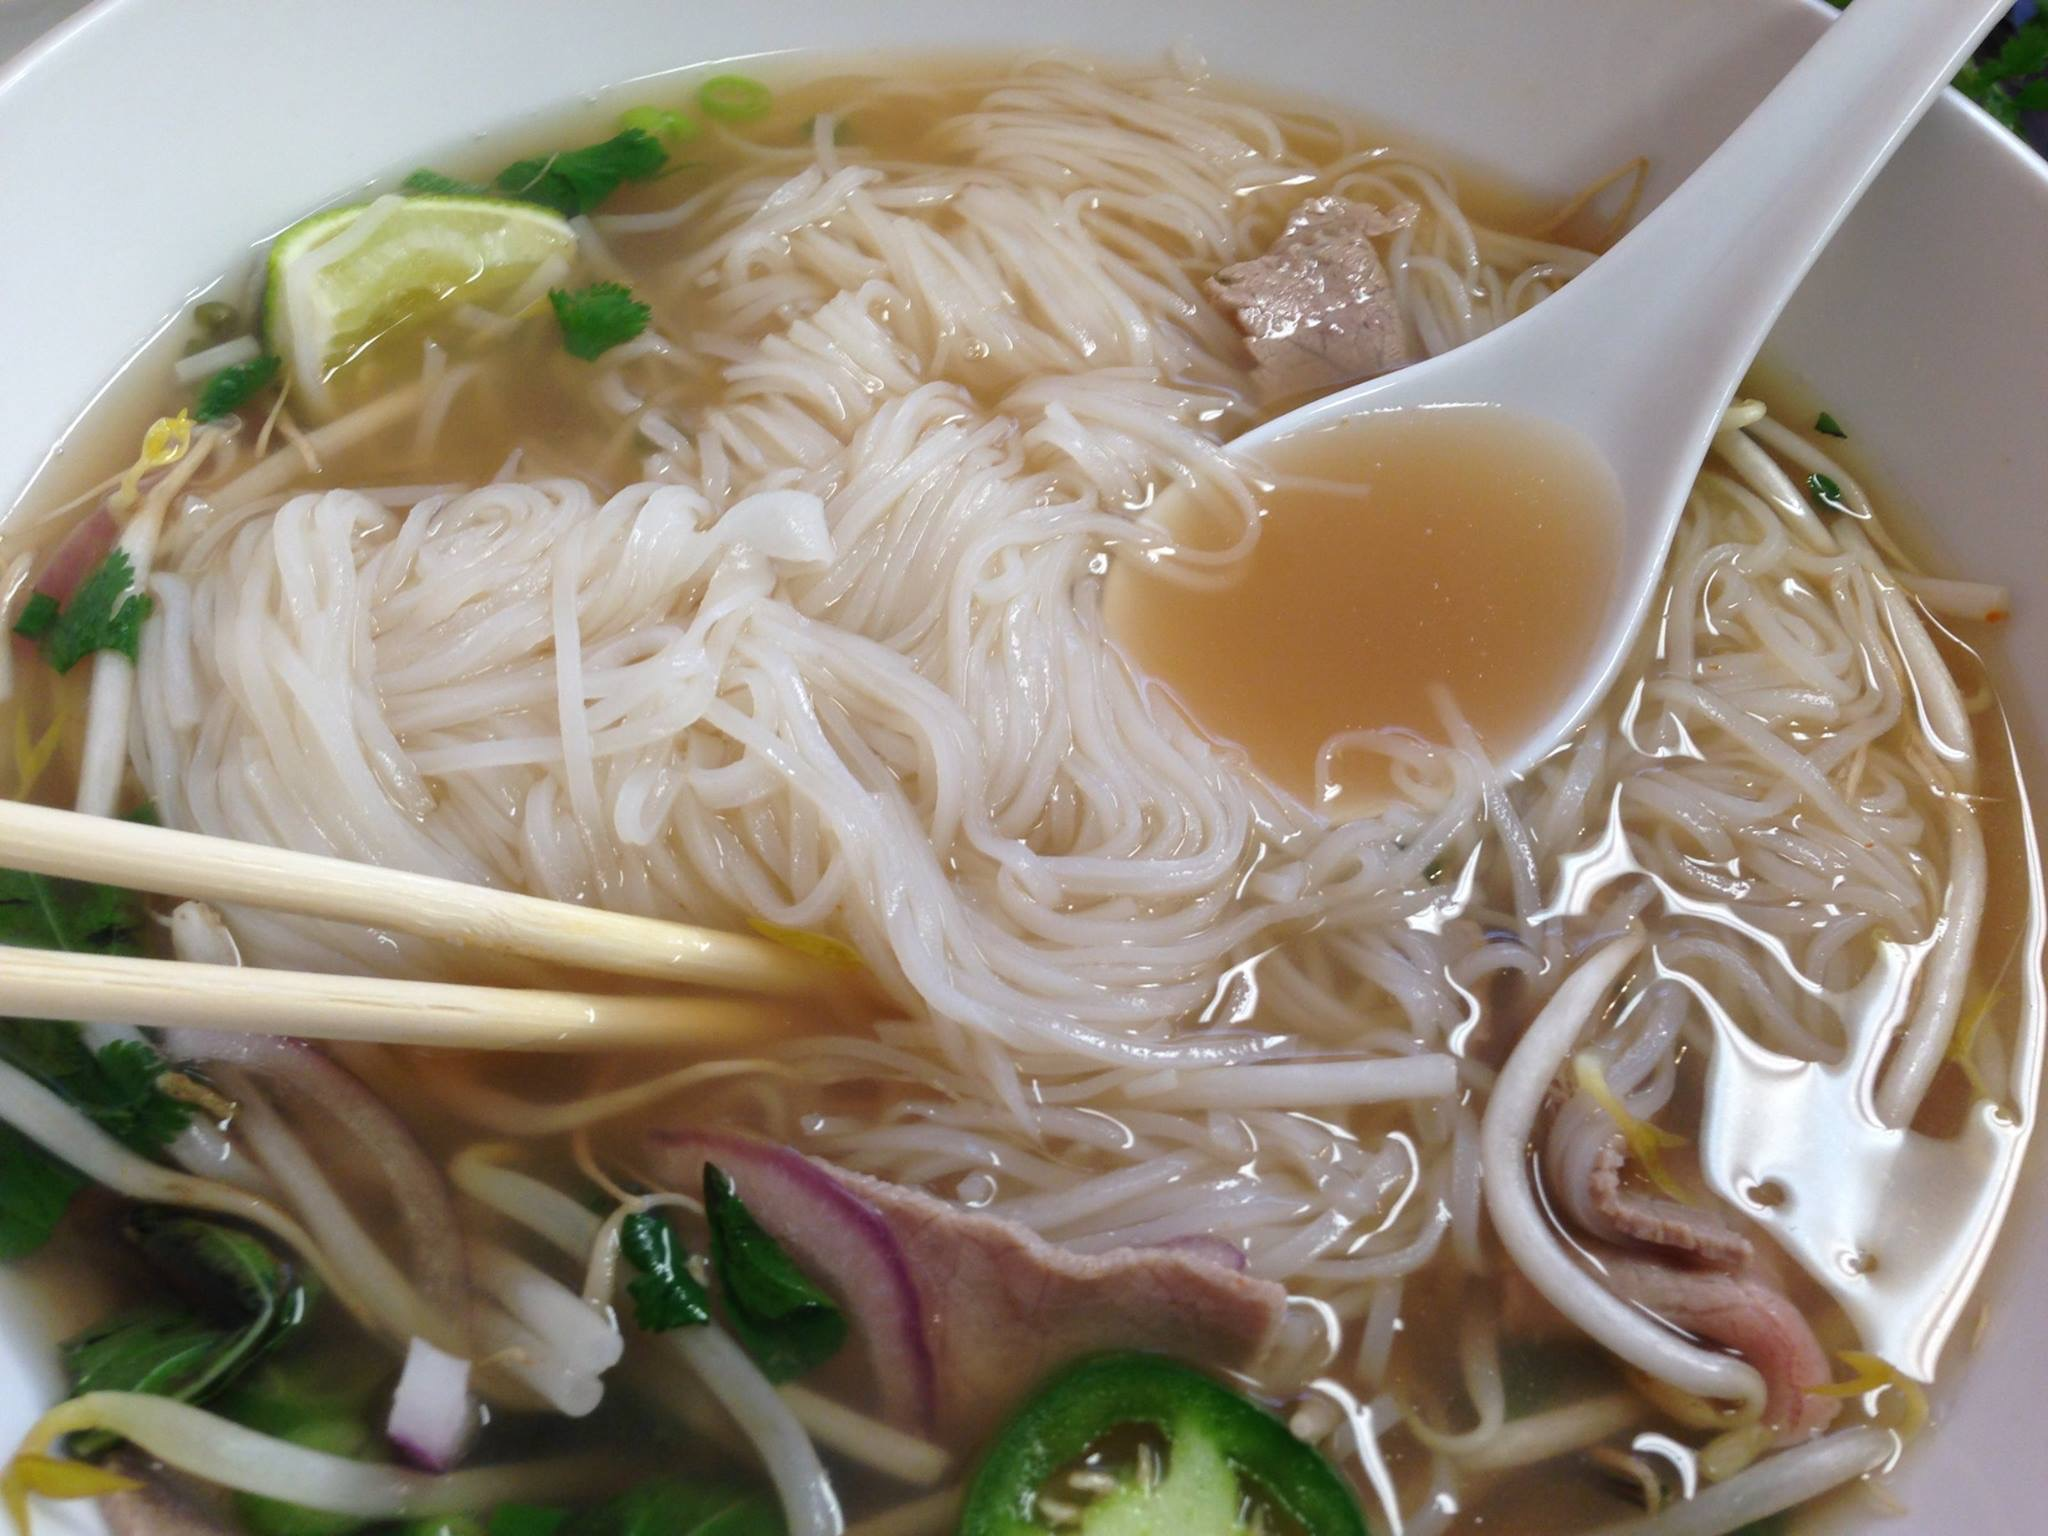 A great looking bowl of Pho Bo